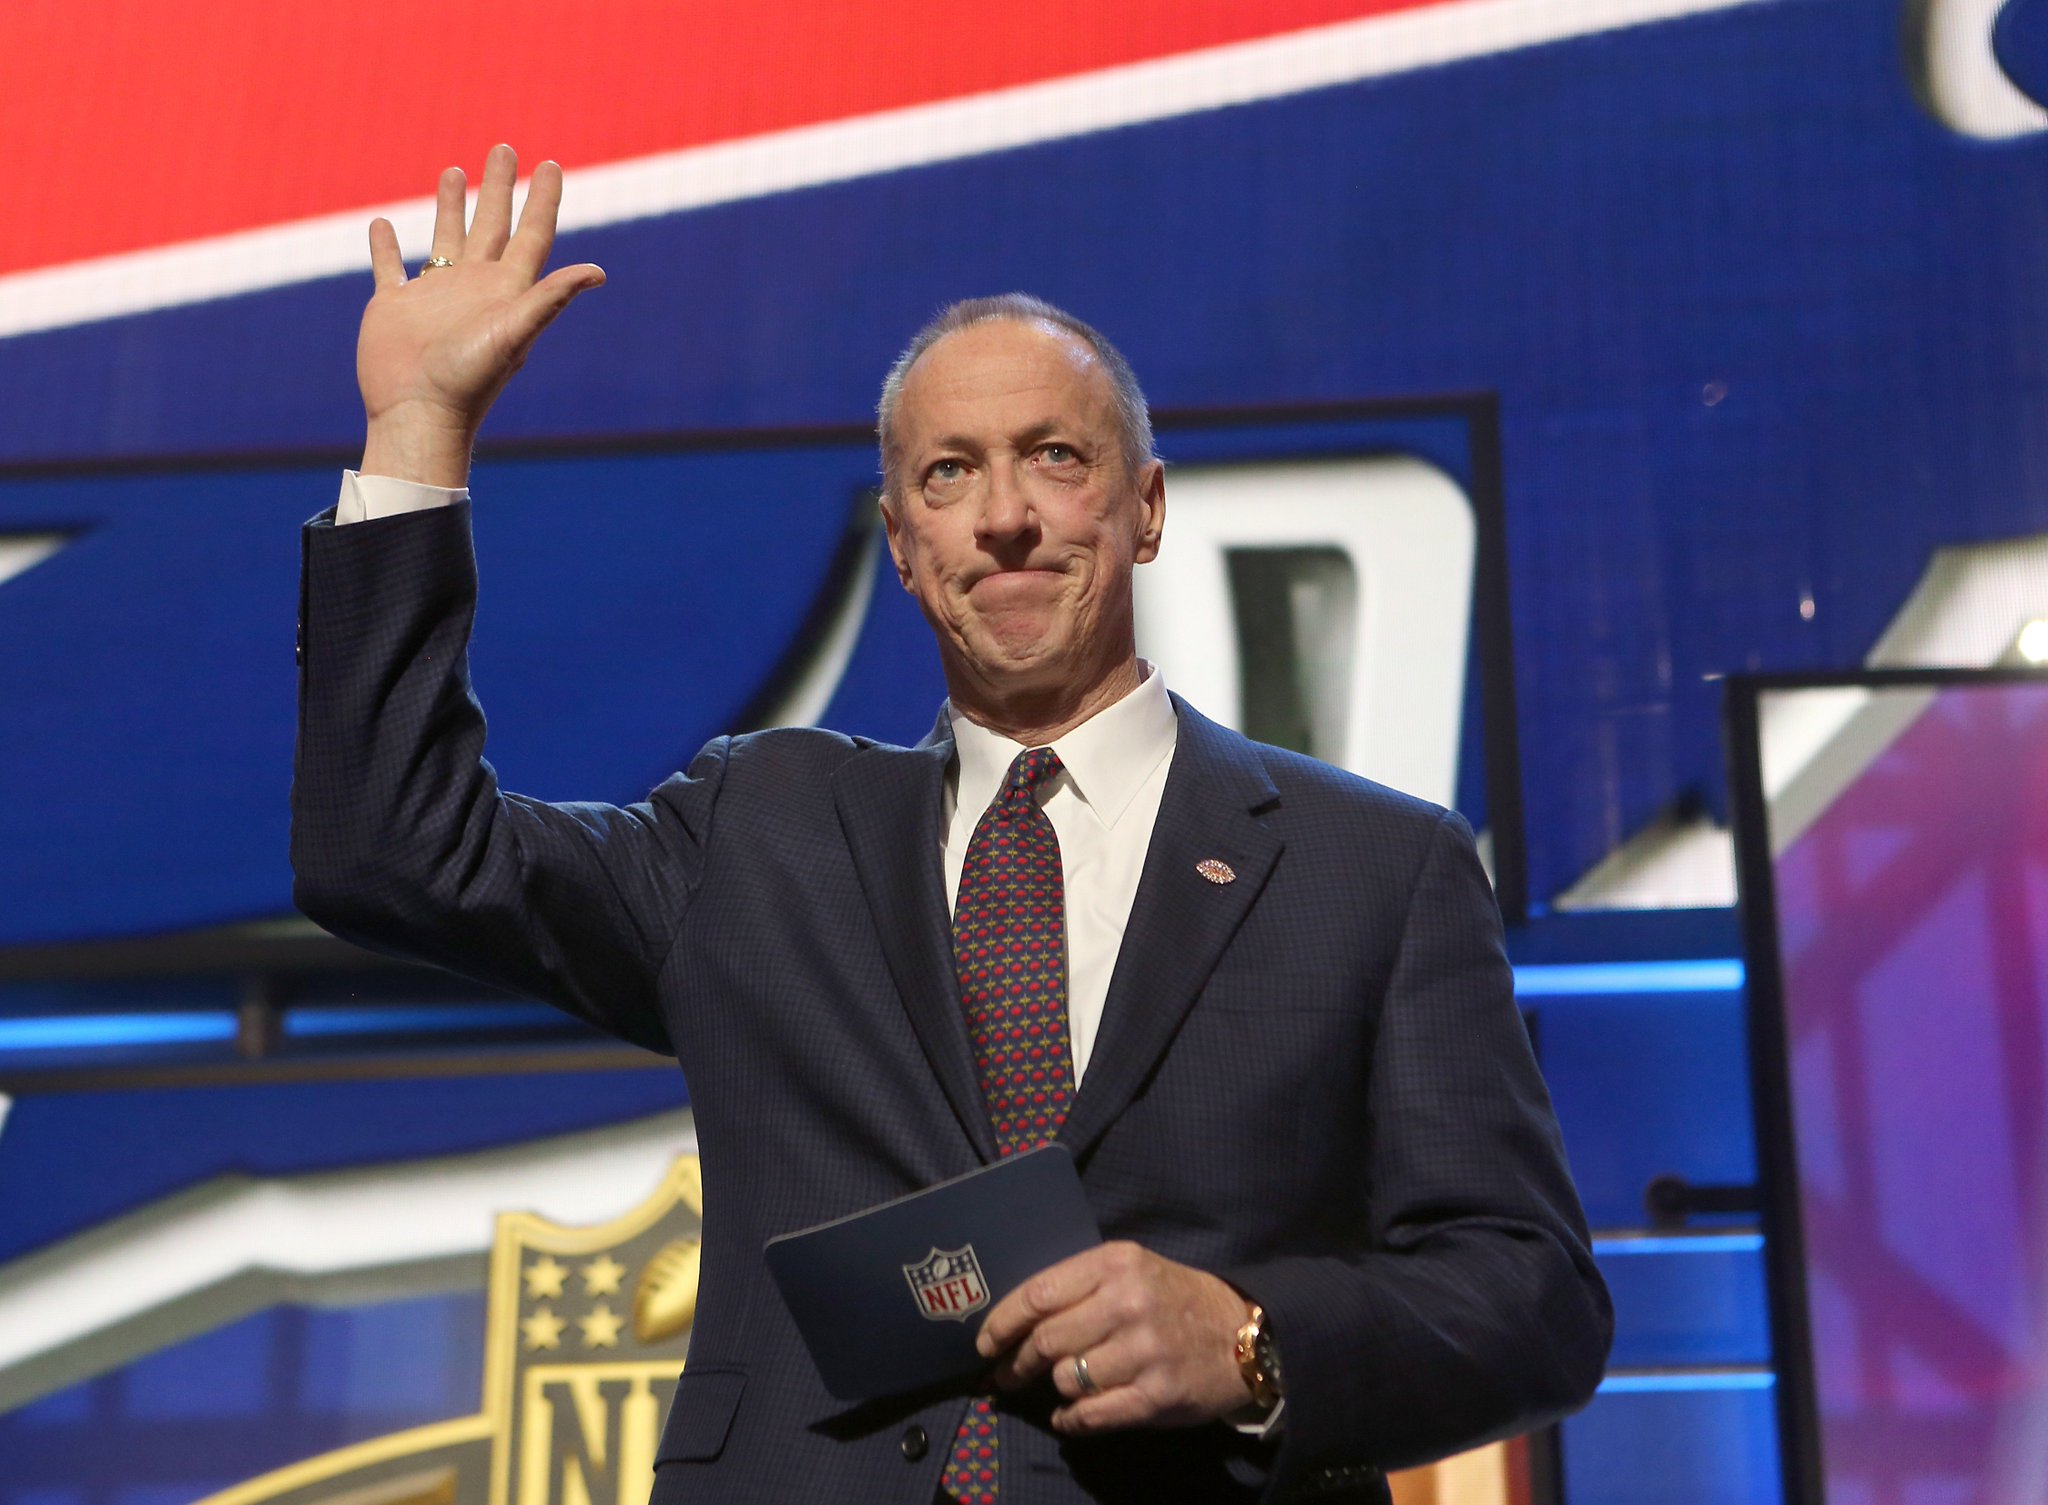 Jim Kelly is set to return to Buffalo today. #KellyTough   Welcome home, Jim: https://t.co/smbCuxhWUd https://t.co/rAXswZhZwJ